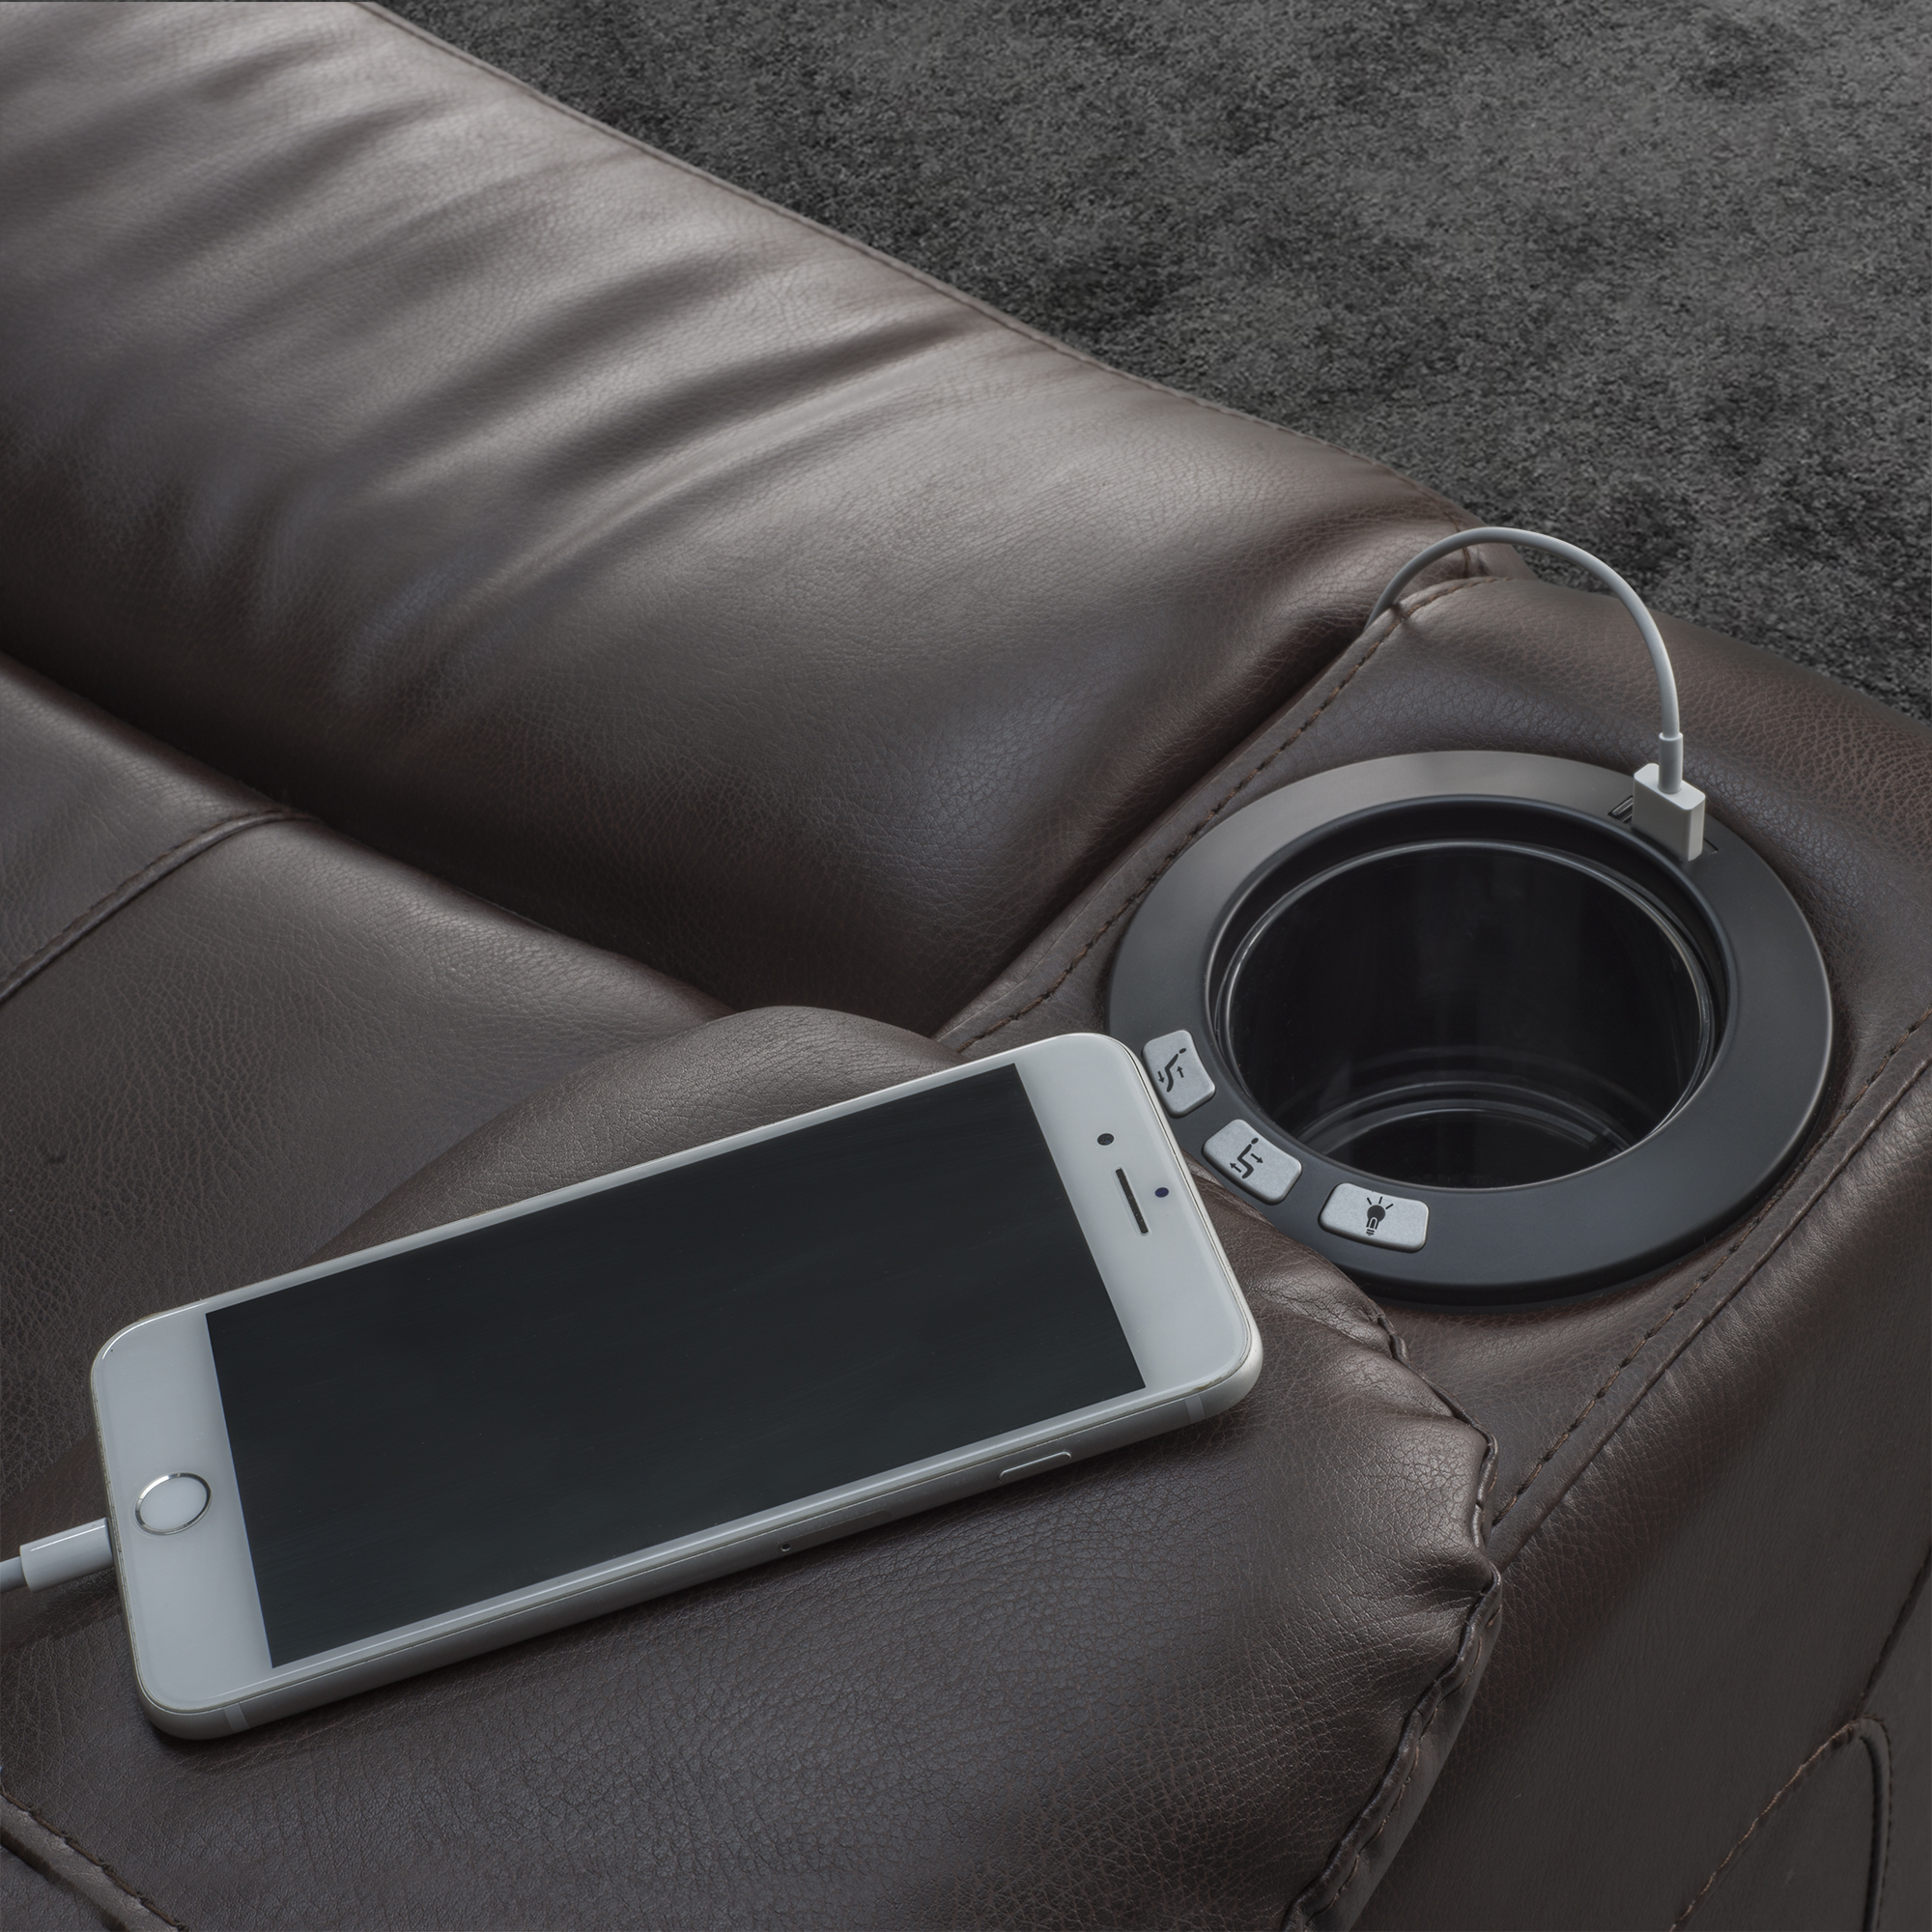 pmod-cm-cupholder-detail-with-phone.jpg